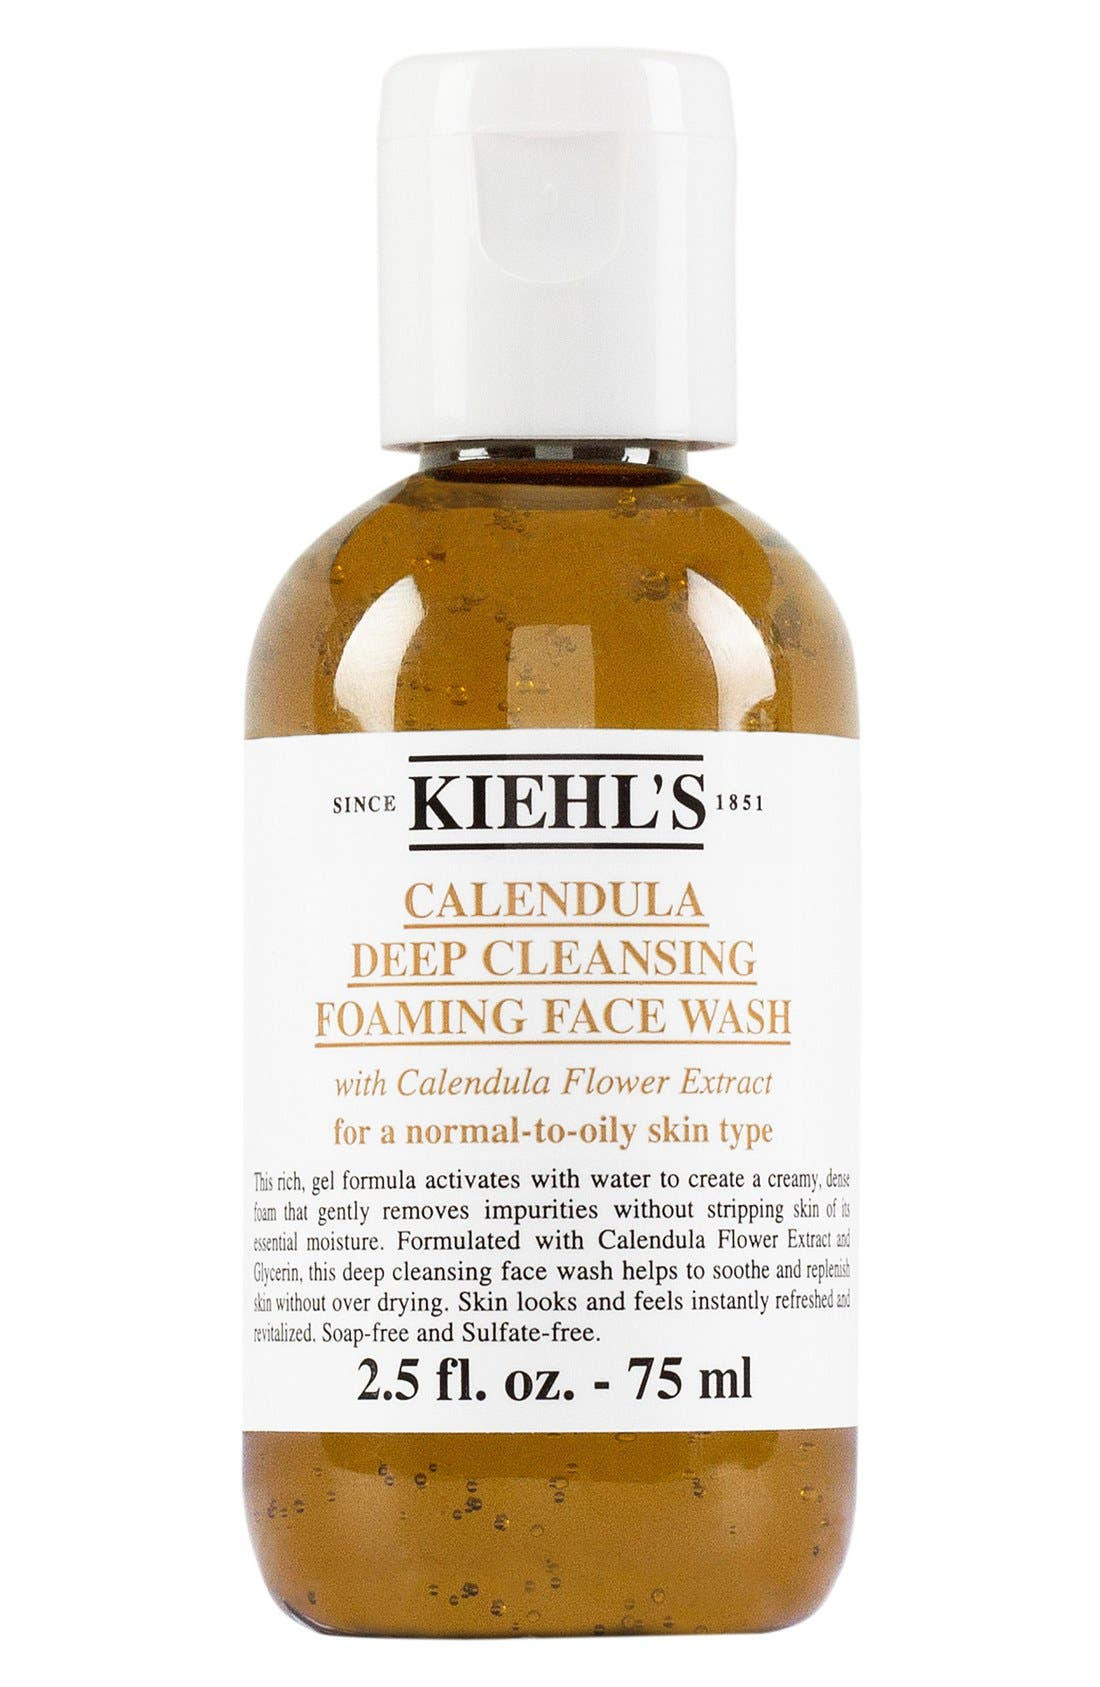 KIEHL'S SINCE 1851,                             Calendula Deep Cleansing Foaming Face Wash for Normal-to-Oily Skin,                             Alternate thumbnail 4, color,                             NO COLOR